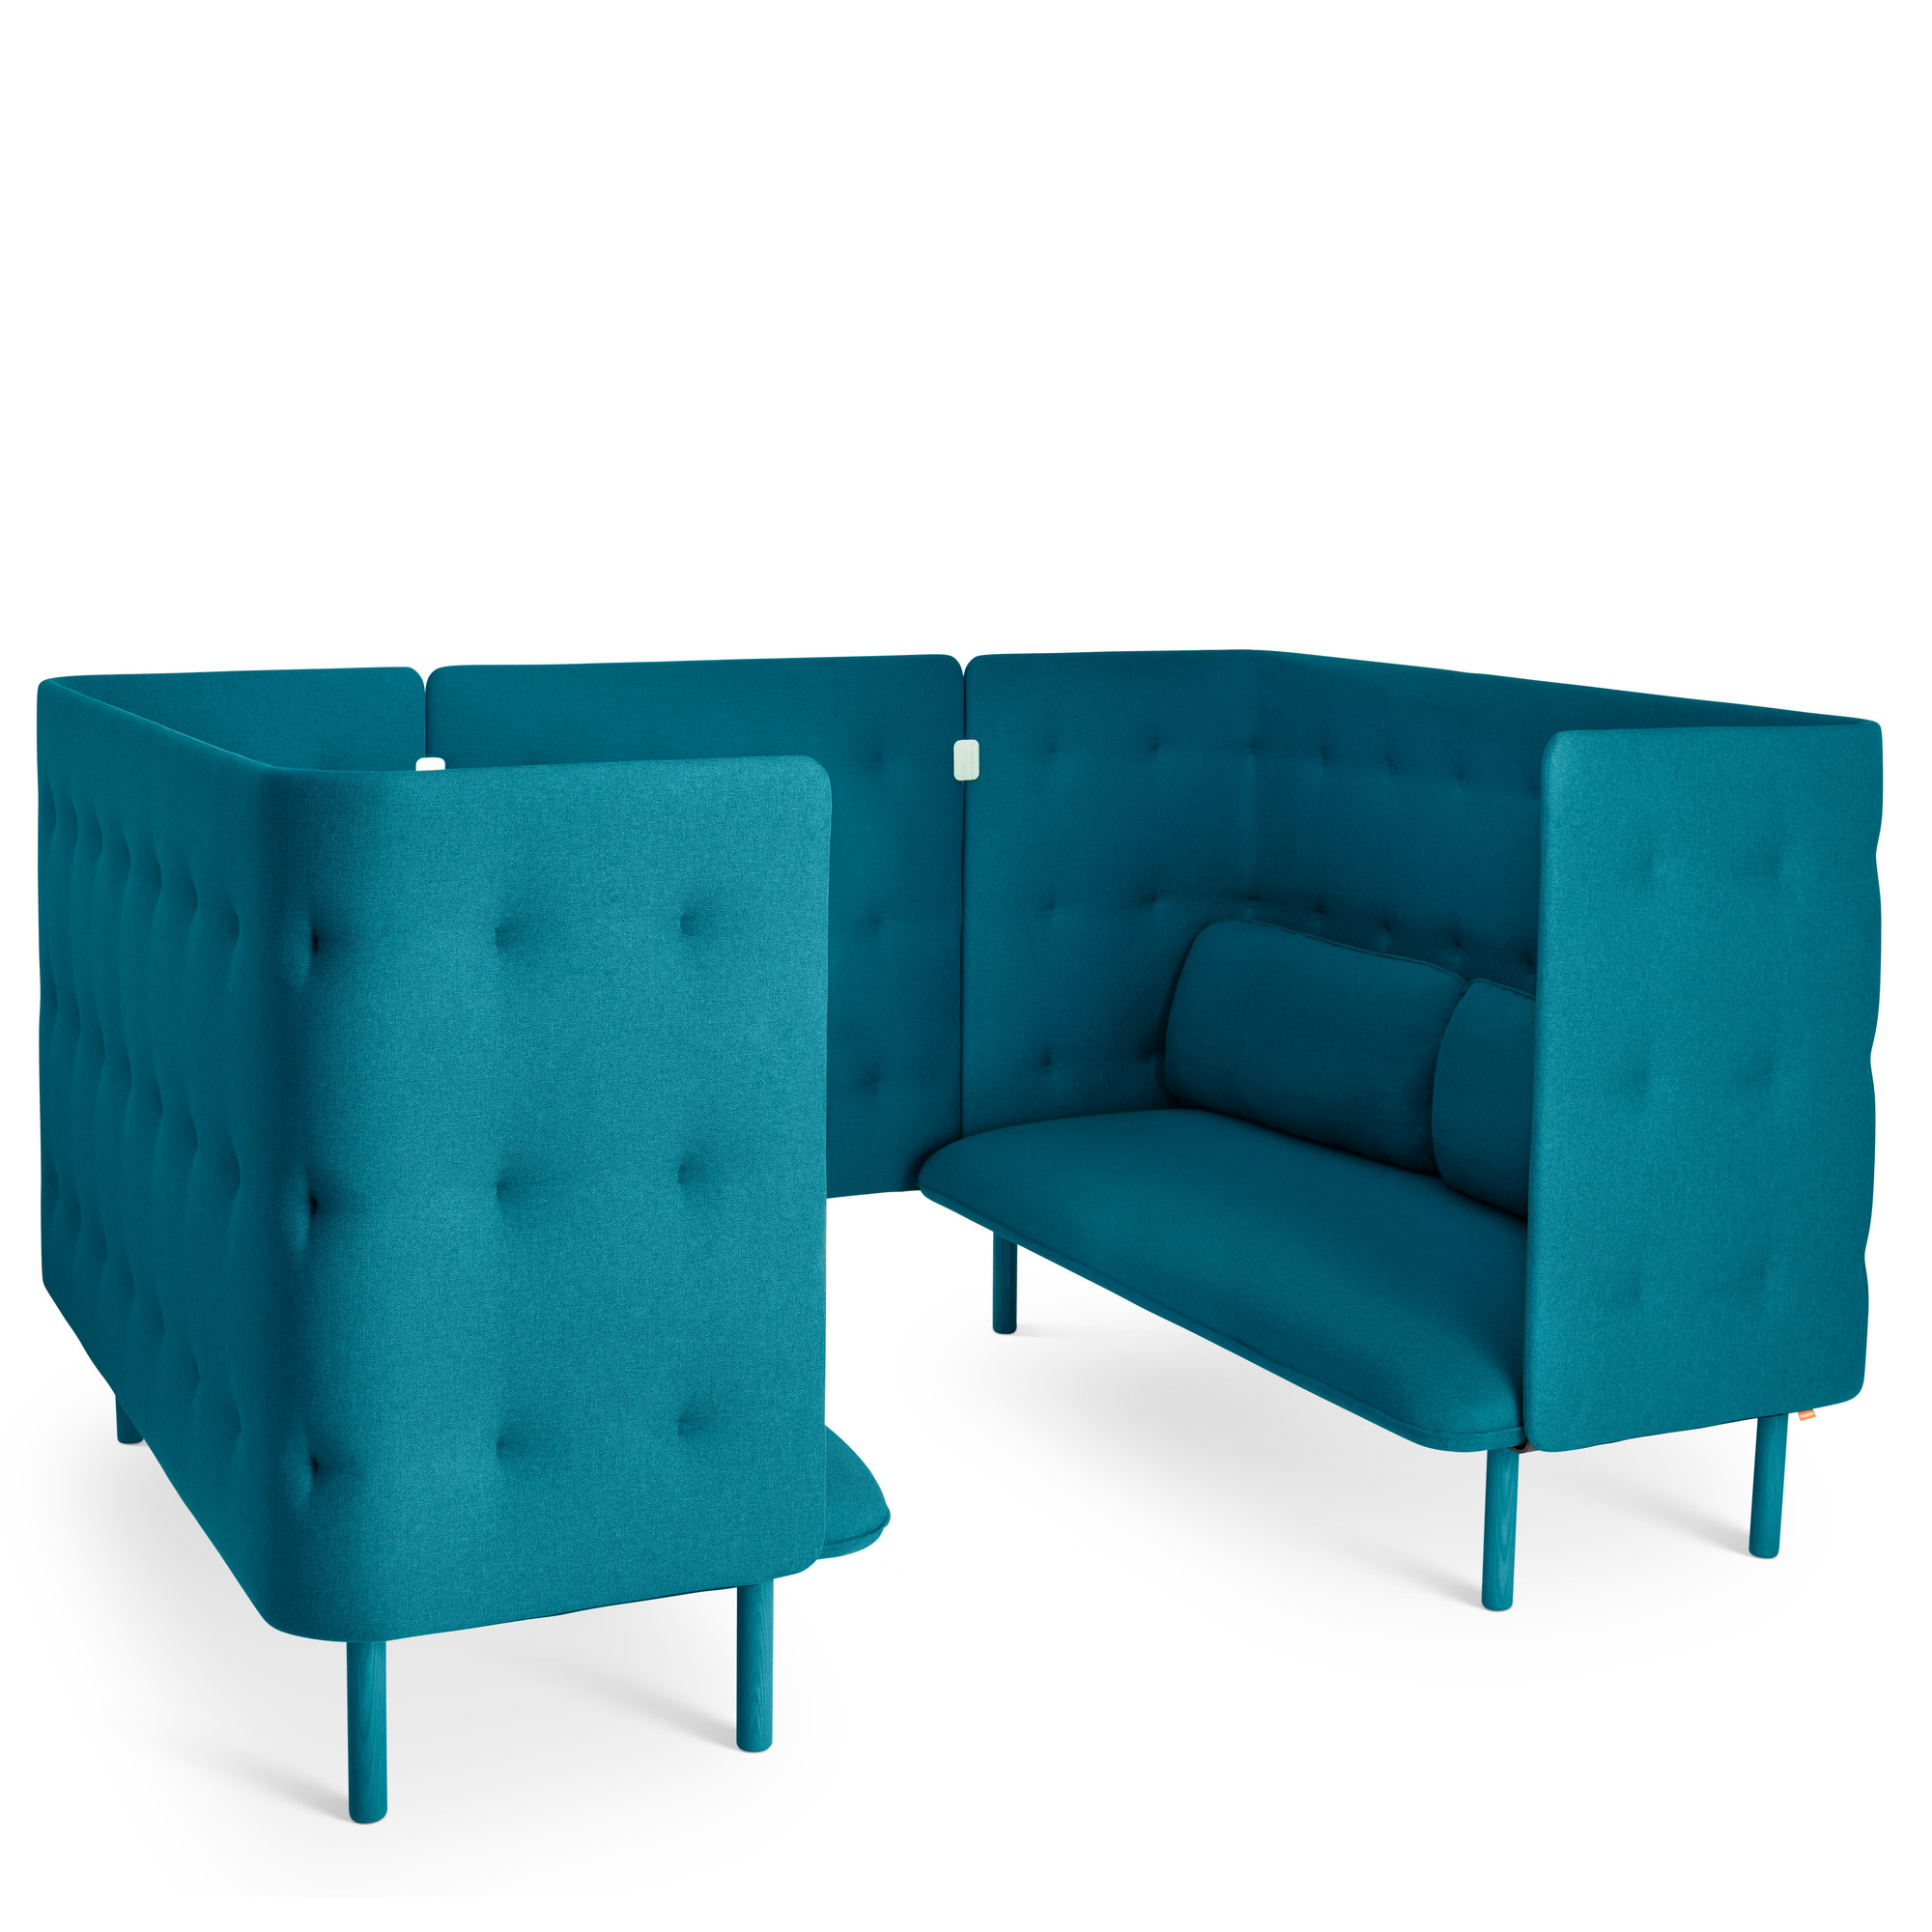 cheap teal sofas sofa surfing madrid colorful sectionals chairs ottomans benches poppin qt booth hi res